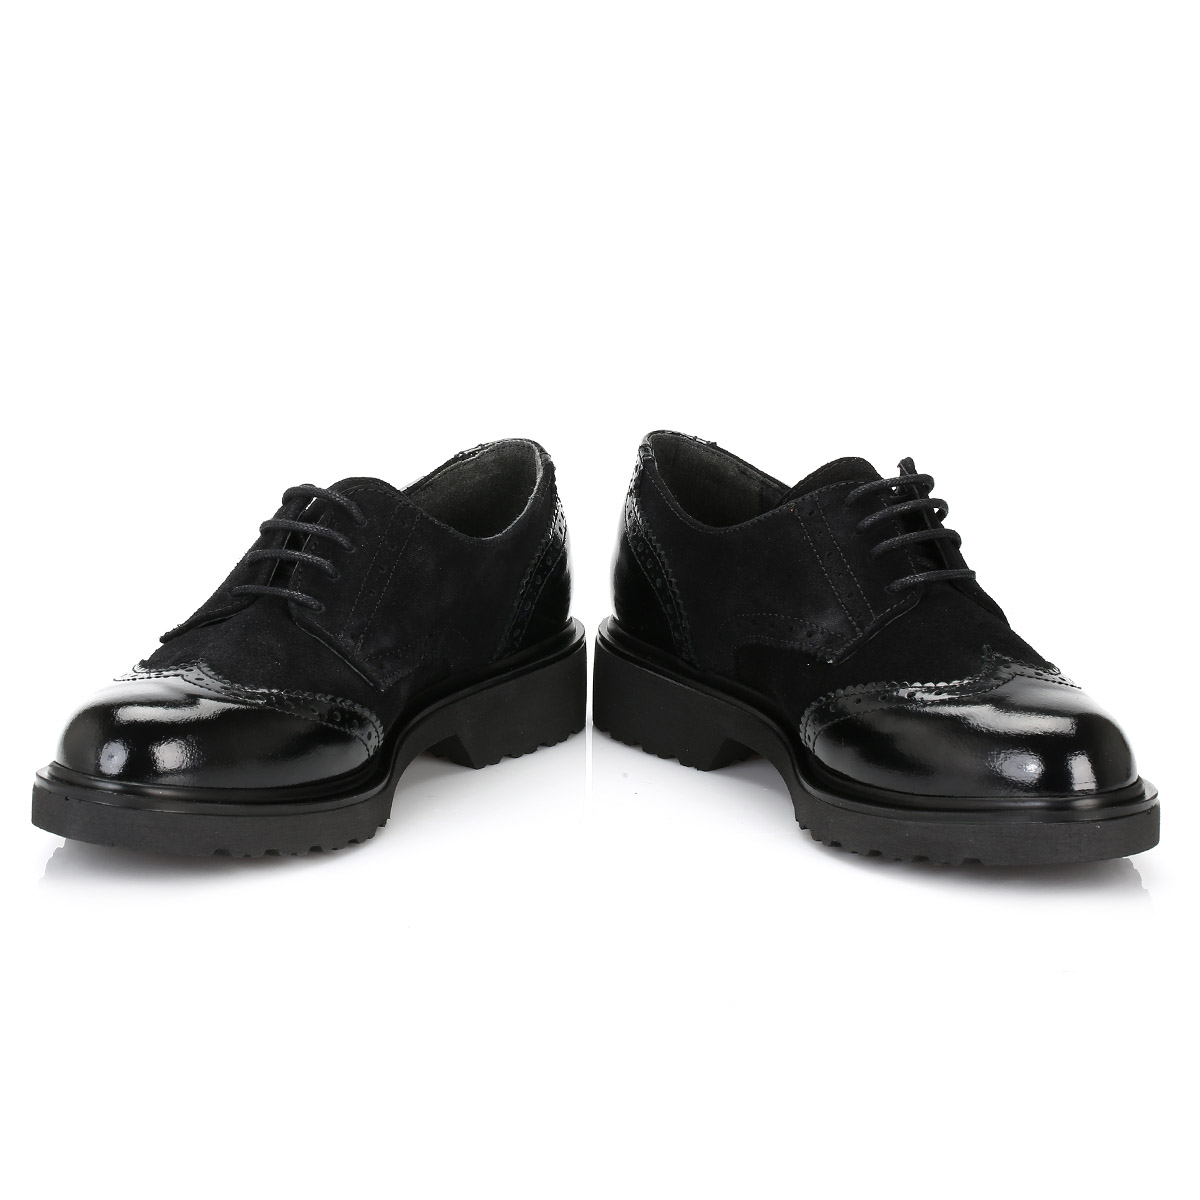 Womens Black Flat Casual Shoes